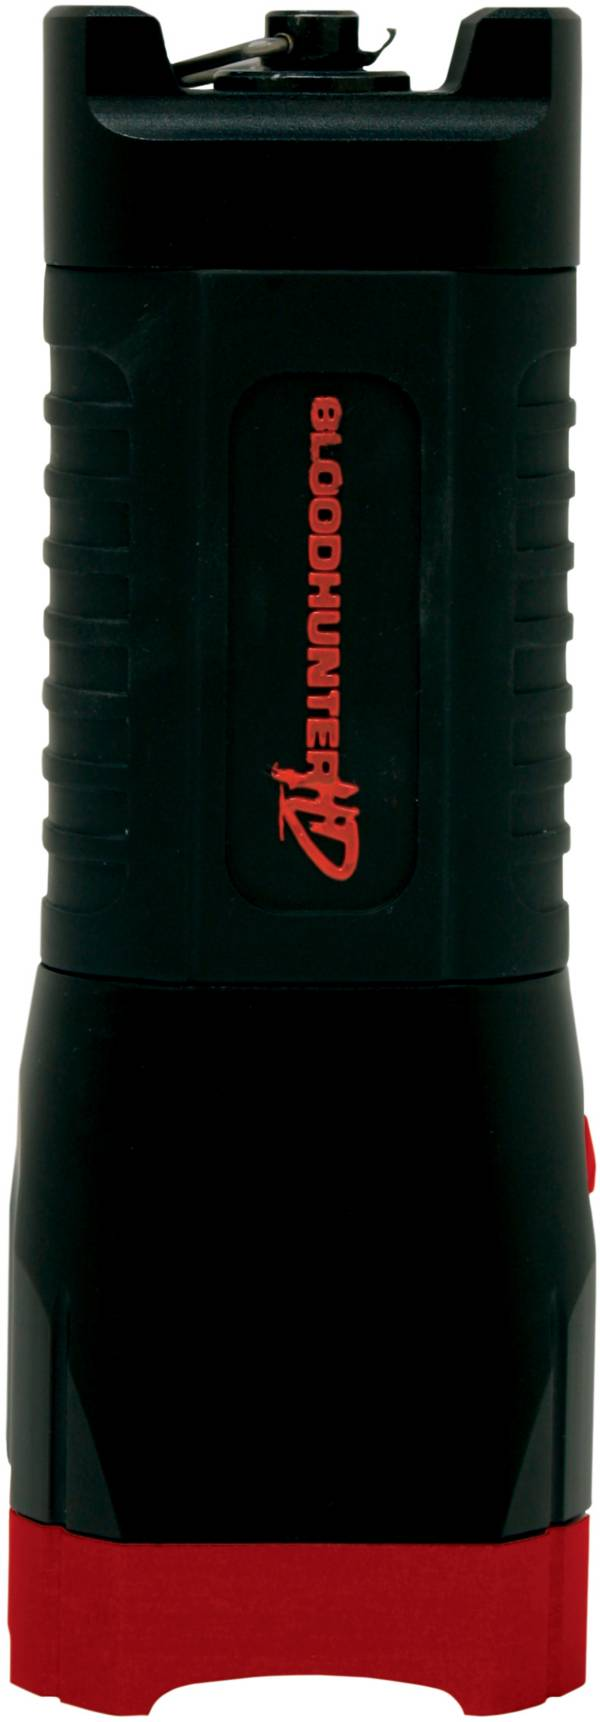 Primos Bloodhunter HD Flashlight product image